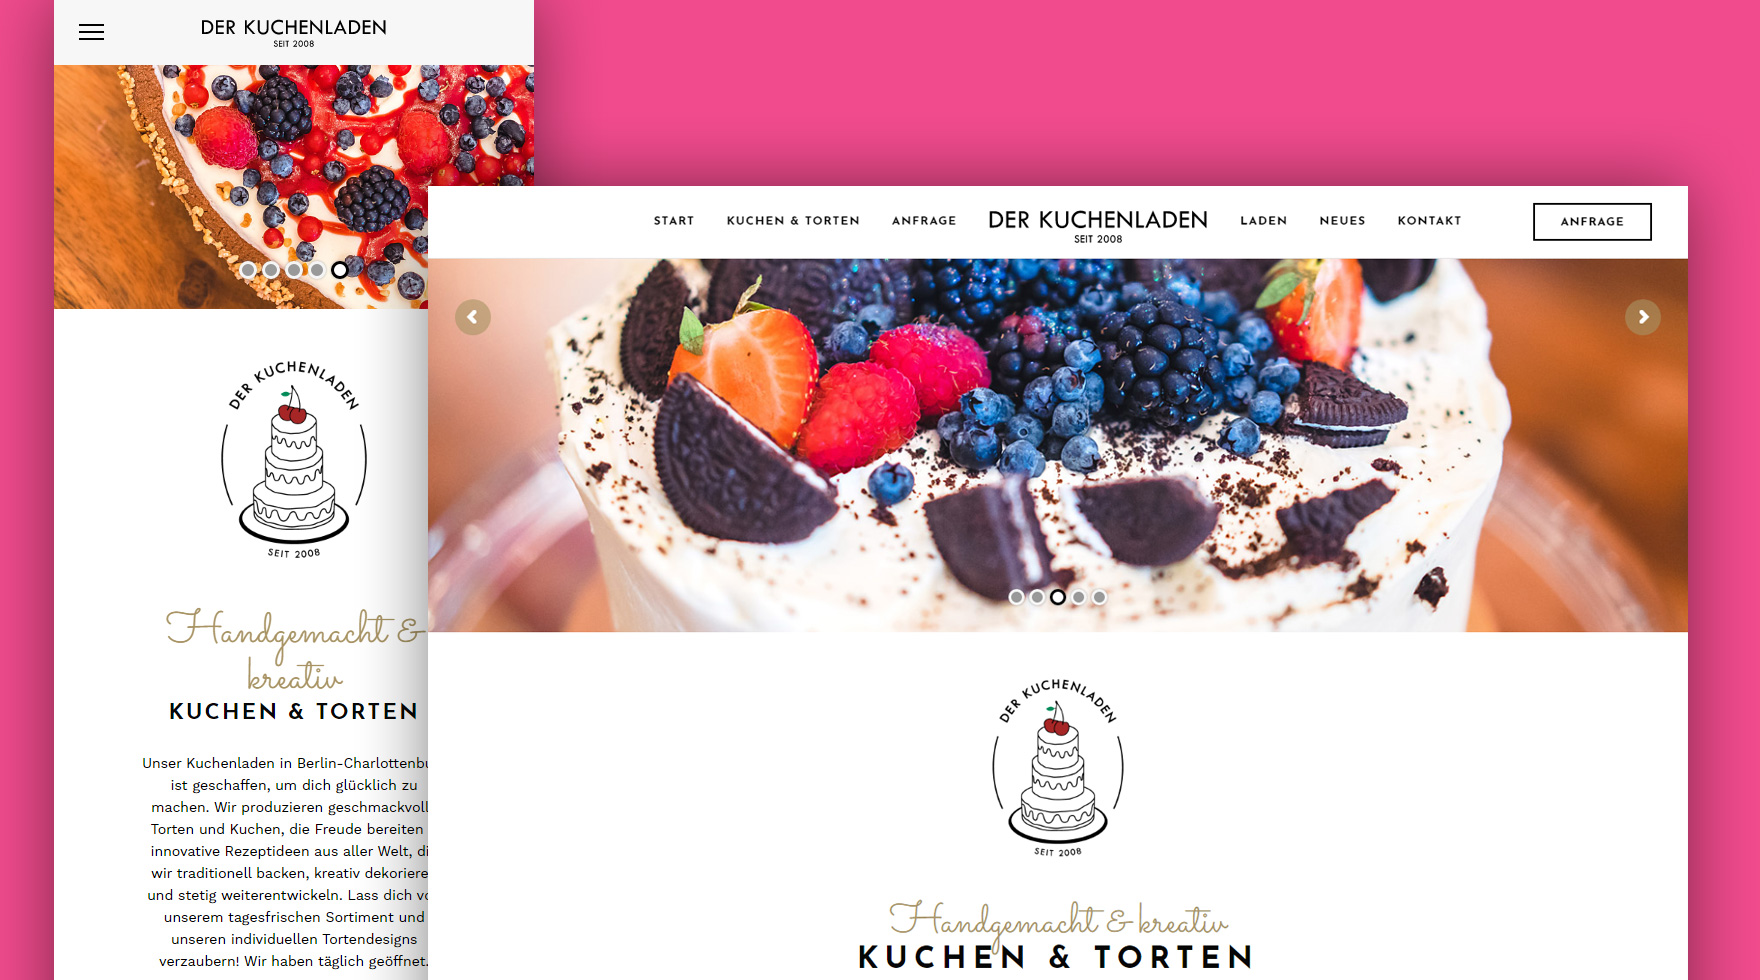 responsive-design-website-kuchenladen-berlin-agency